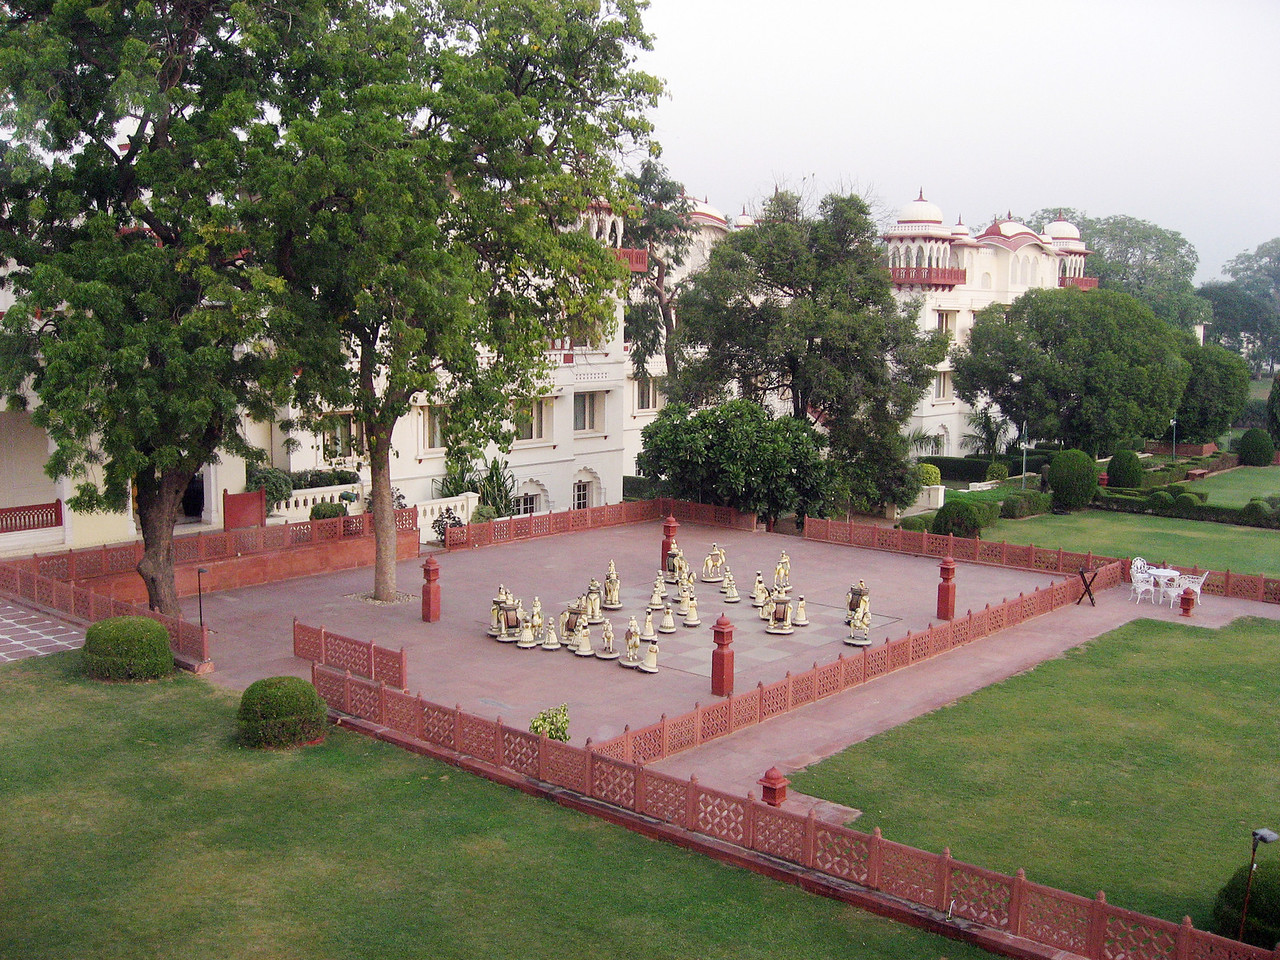 The hotel grounds in Jaipur